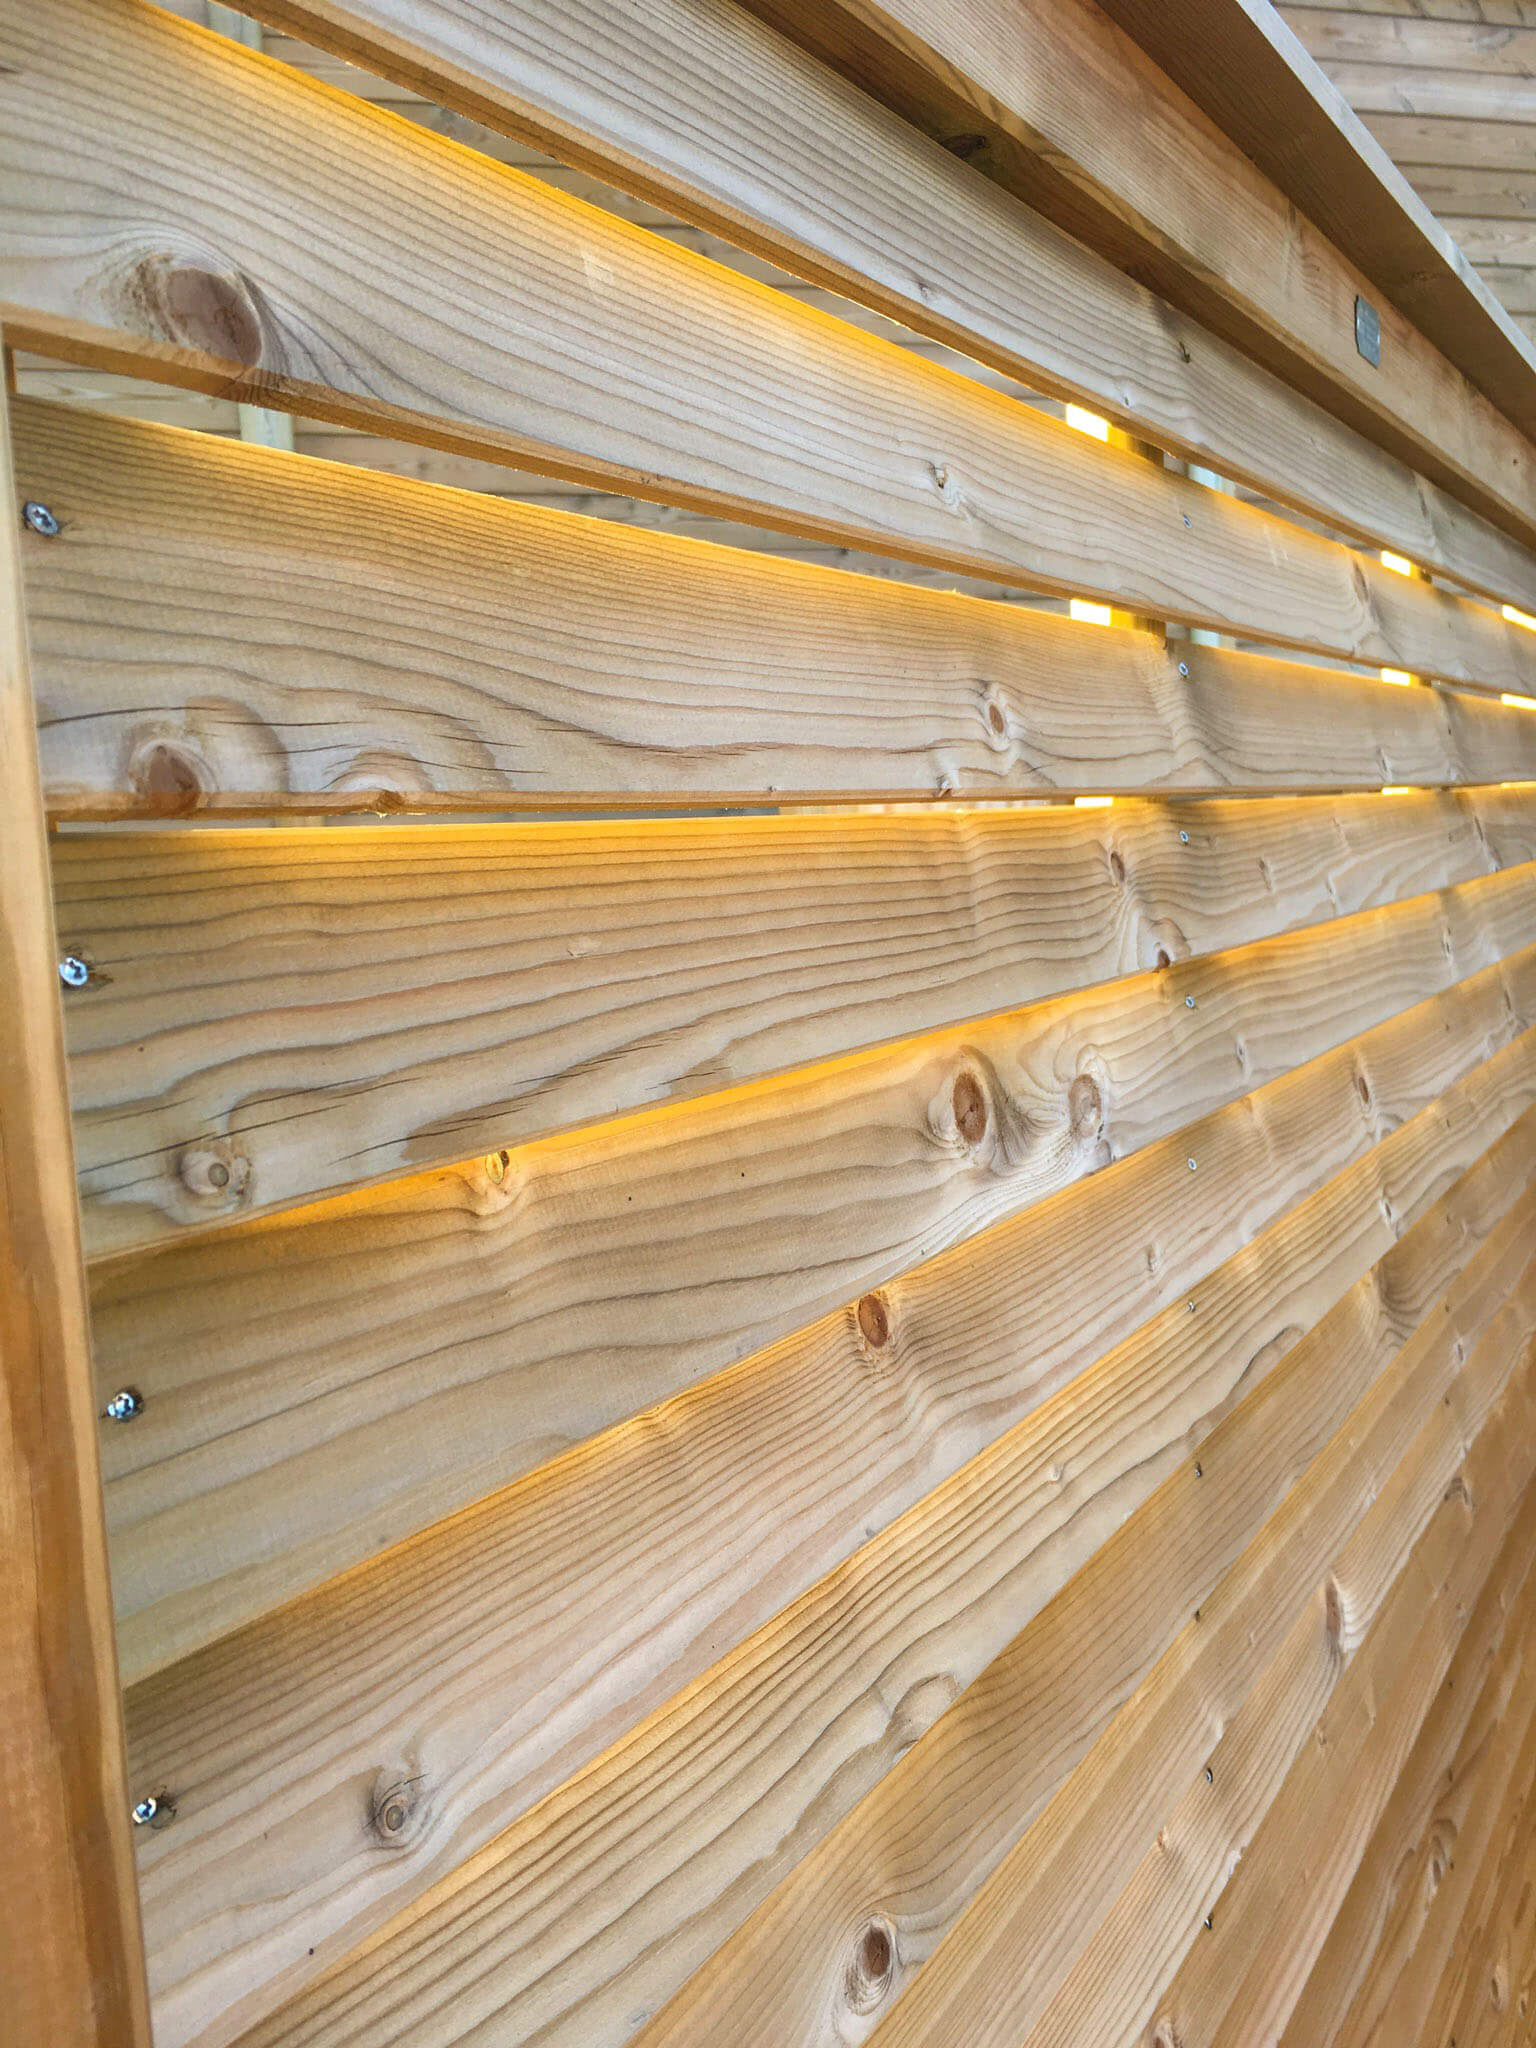 Slatted fencing lets light through